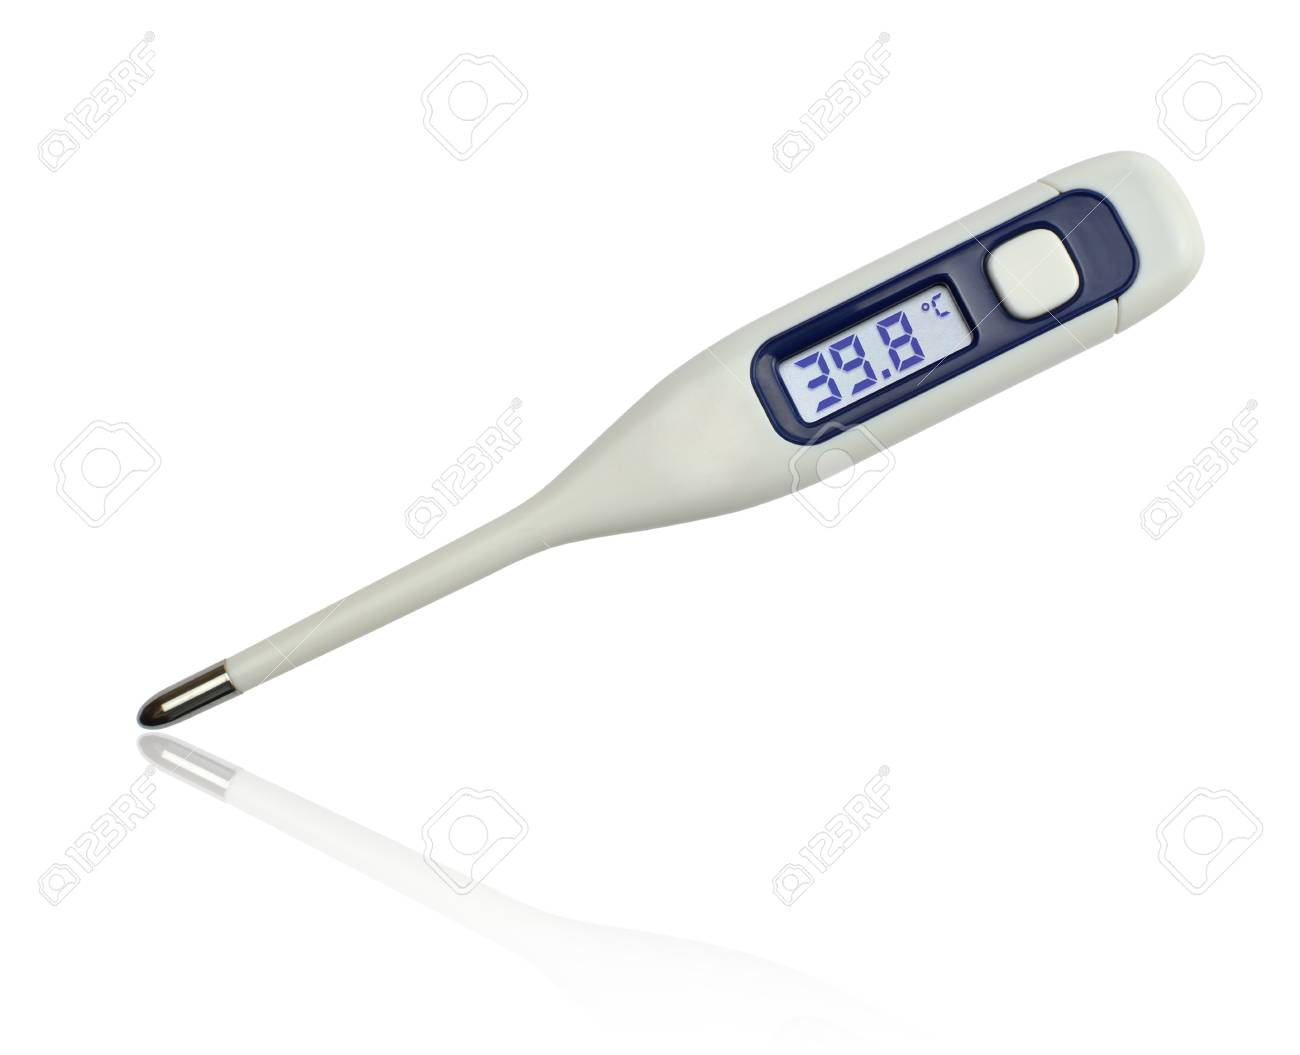 39 8 Degrees Celsius On Clinical Electronic Thermometer On White